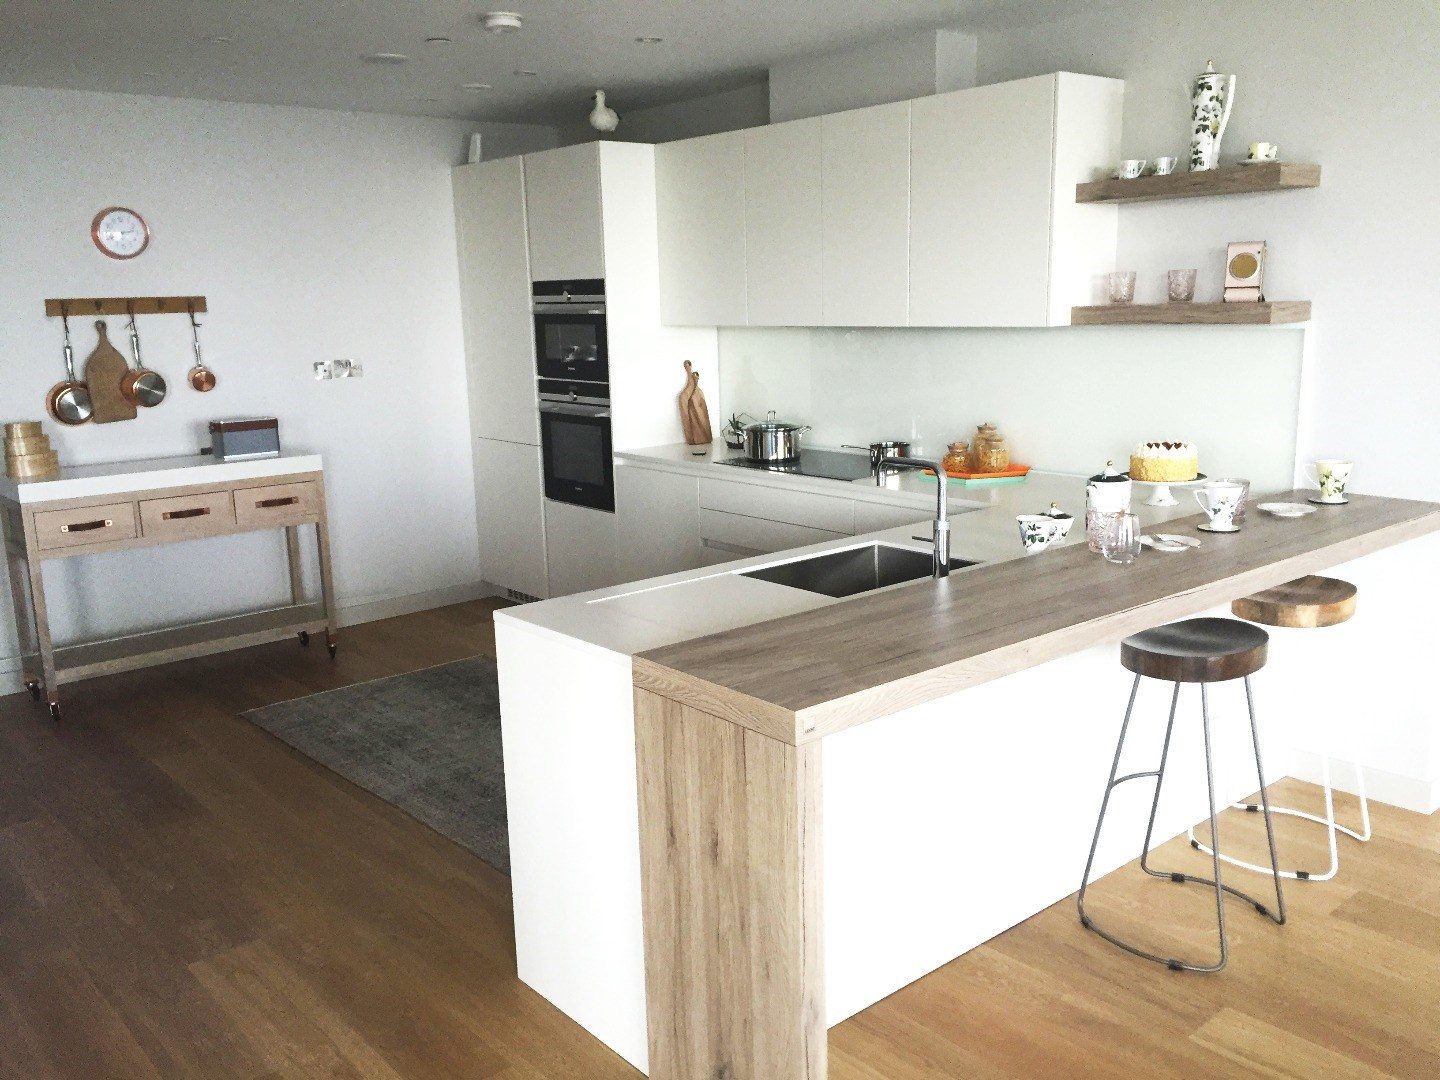 bespoke kitchen projects - the leicht kitchen design centre